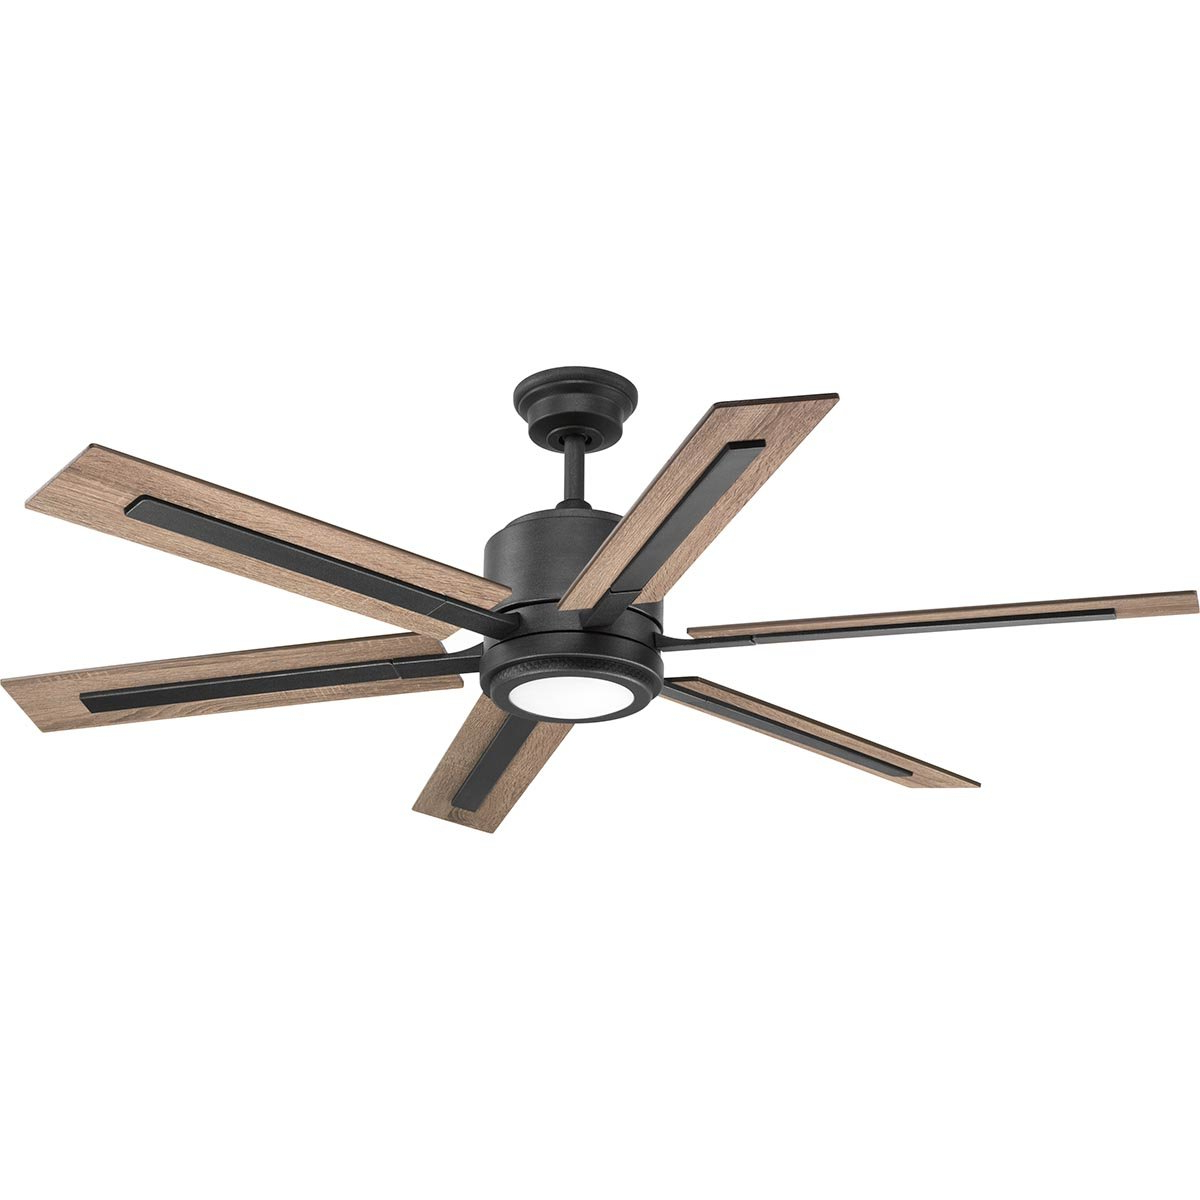 "Bankston 8 Blade Led Ceiling Fans With Regard To Most Current 60"" Lesure 6 Blade Led Ceiling Fan With Remote, Light Kit Included (View 5 of 20)"